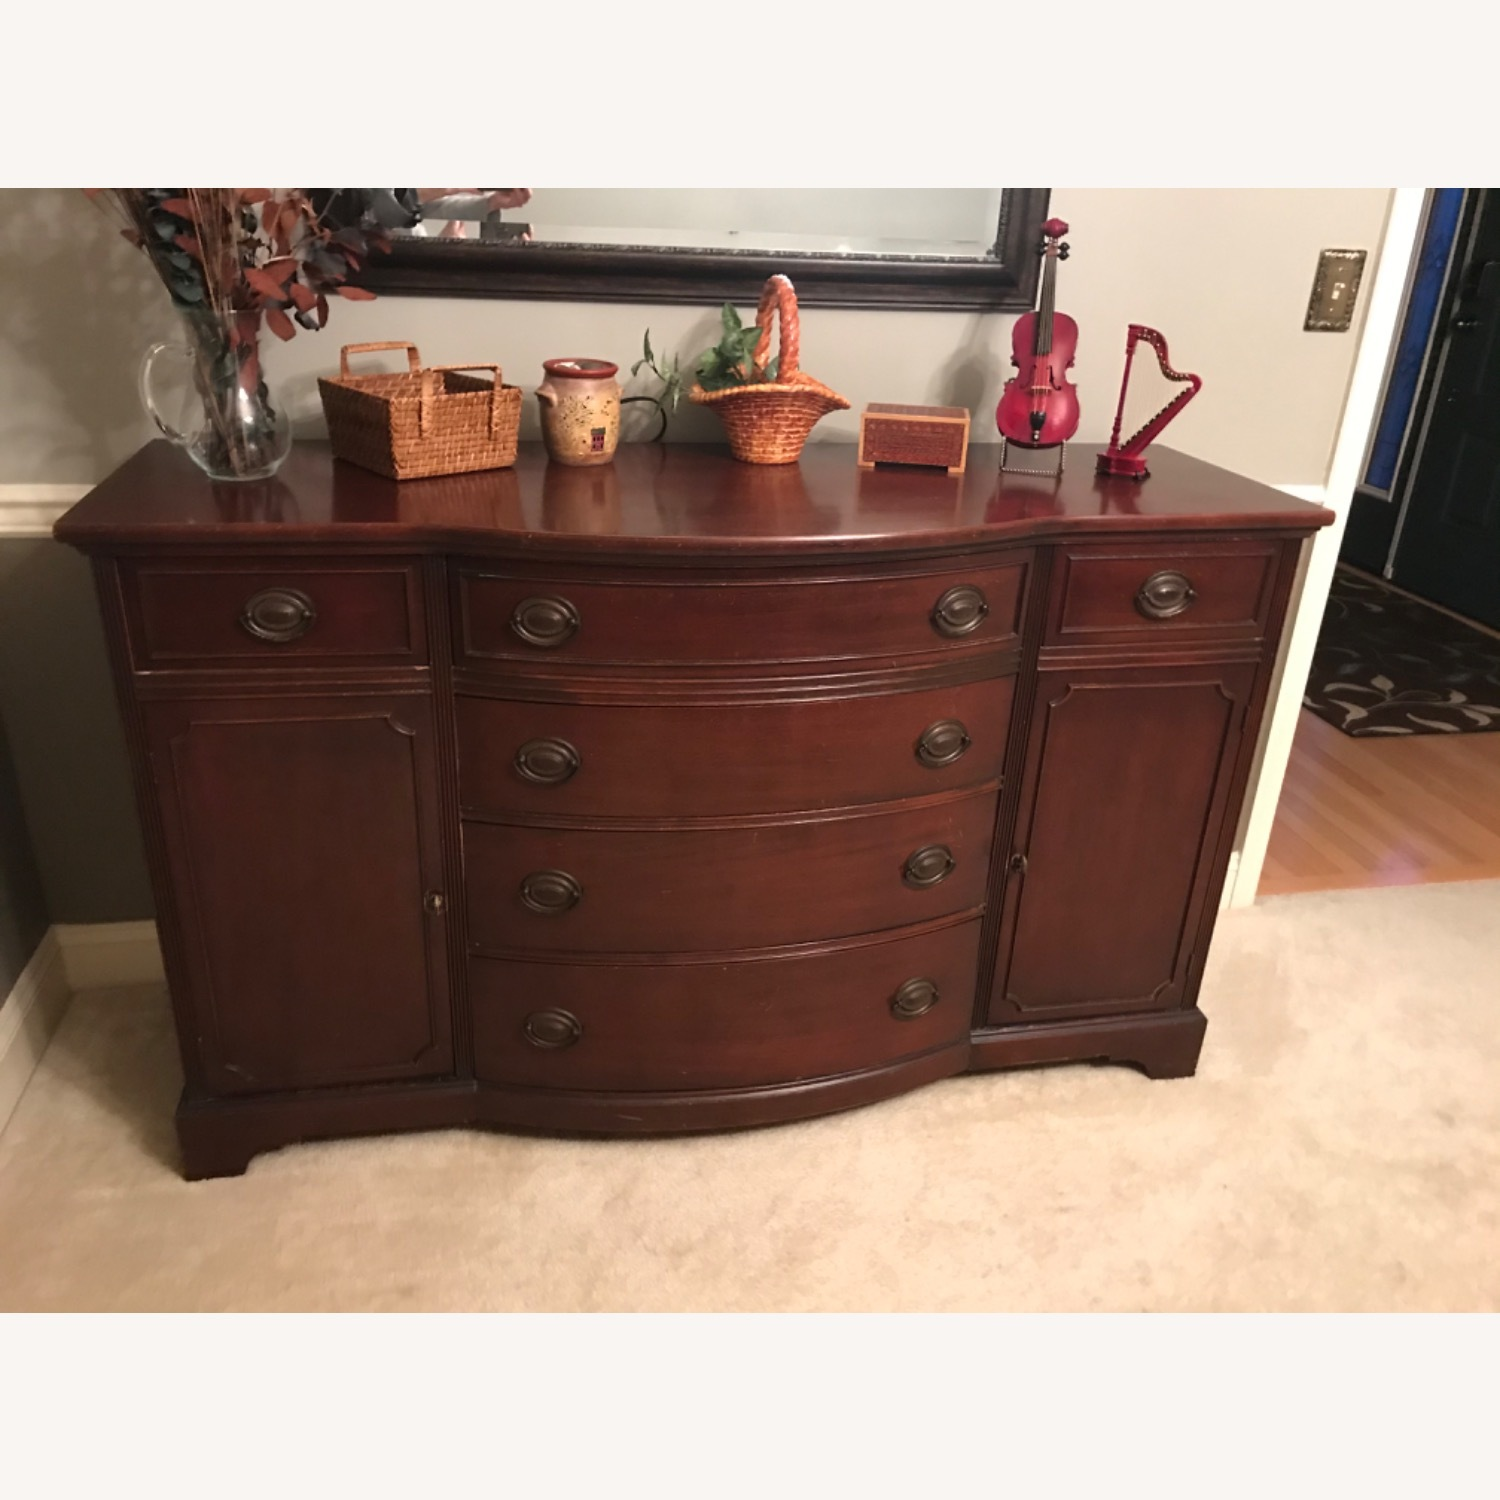 Drexel Mahogany Buffet -Sideboard Chest - image-1